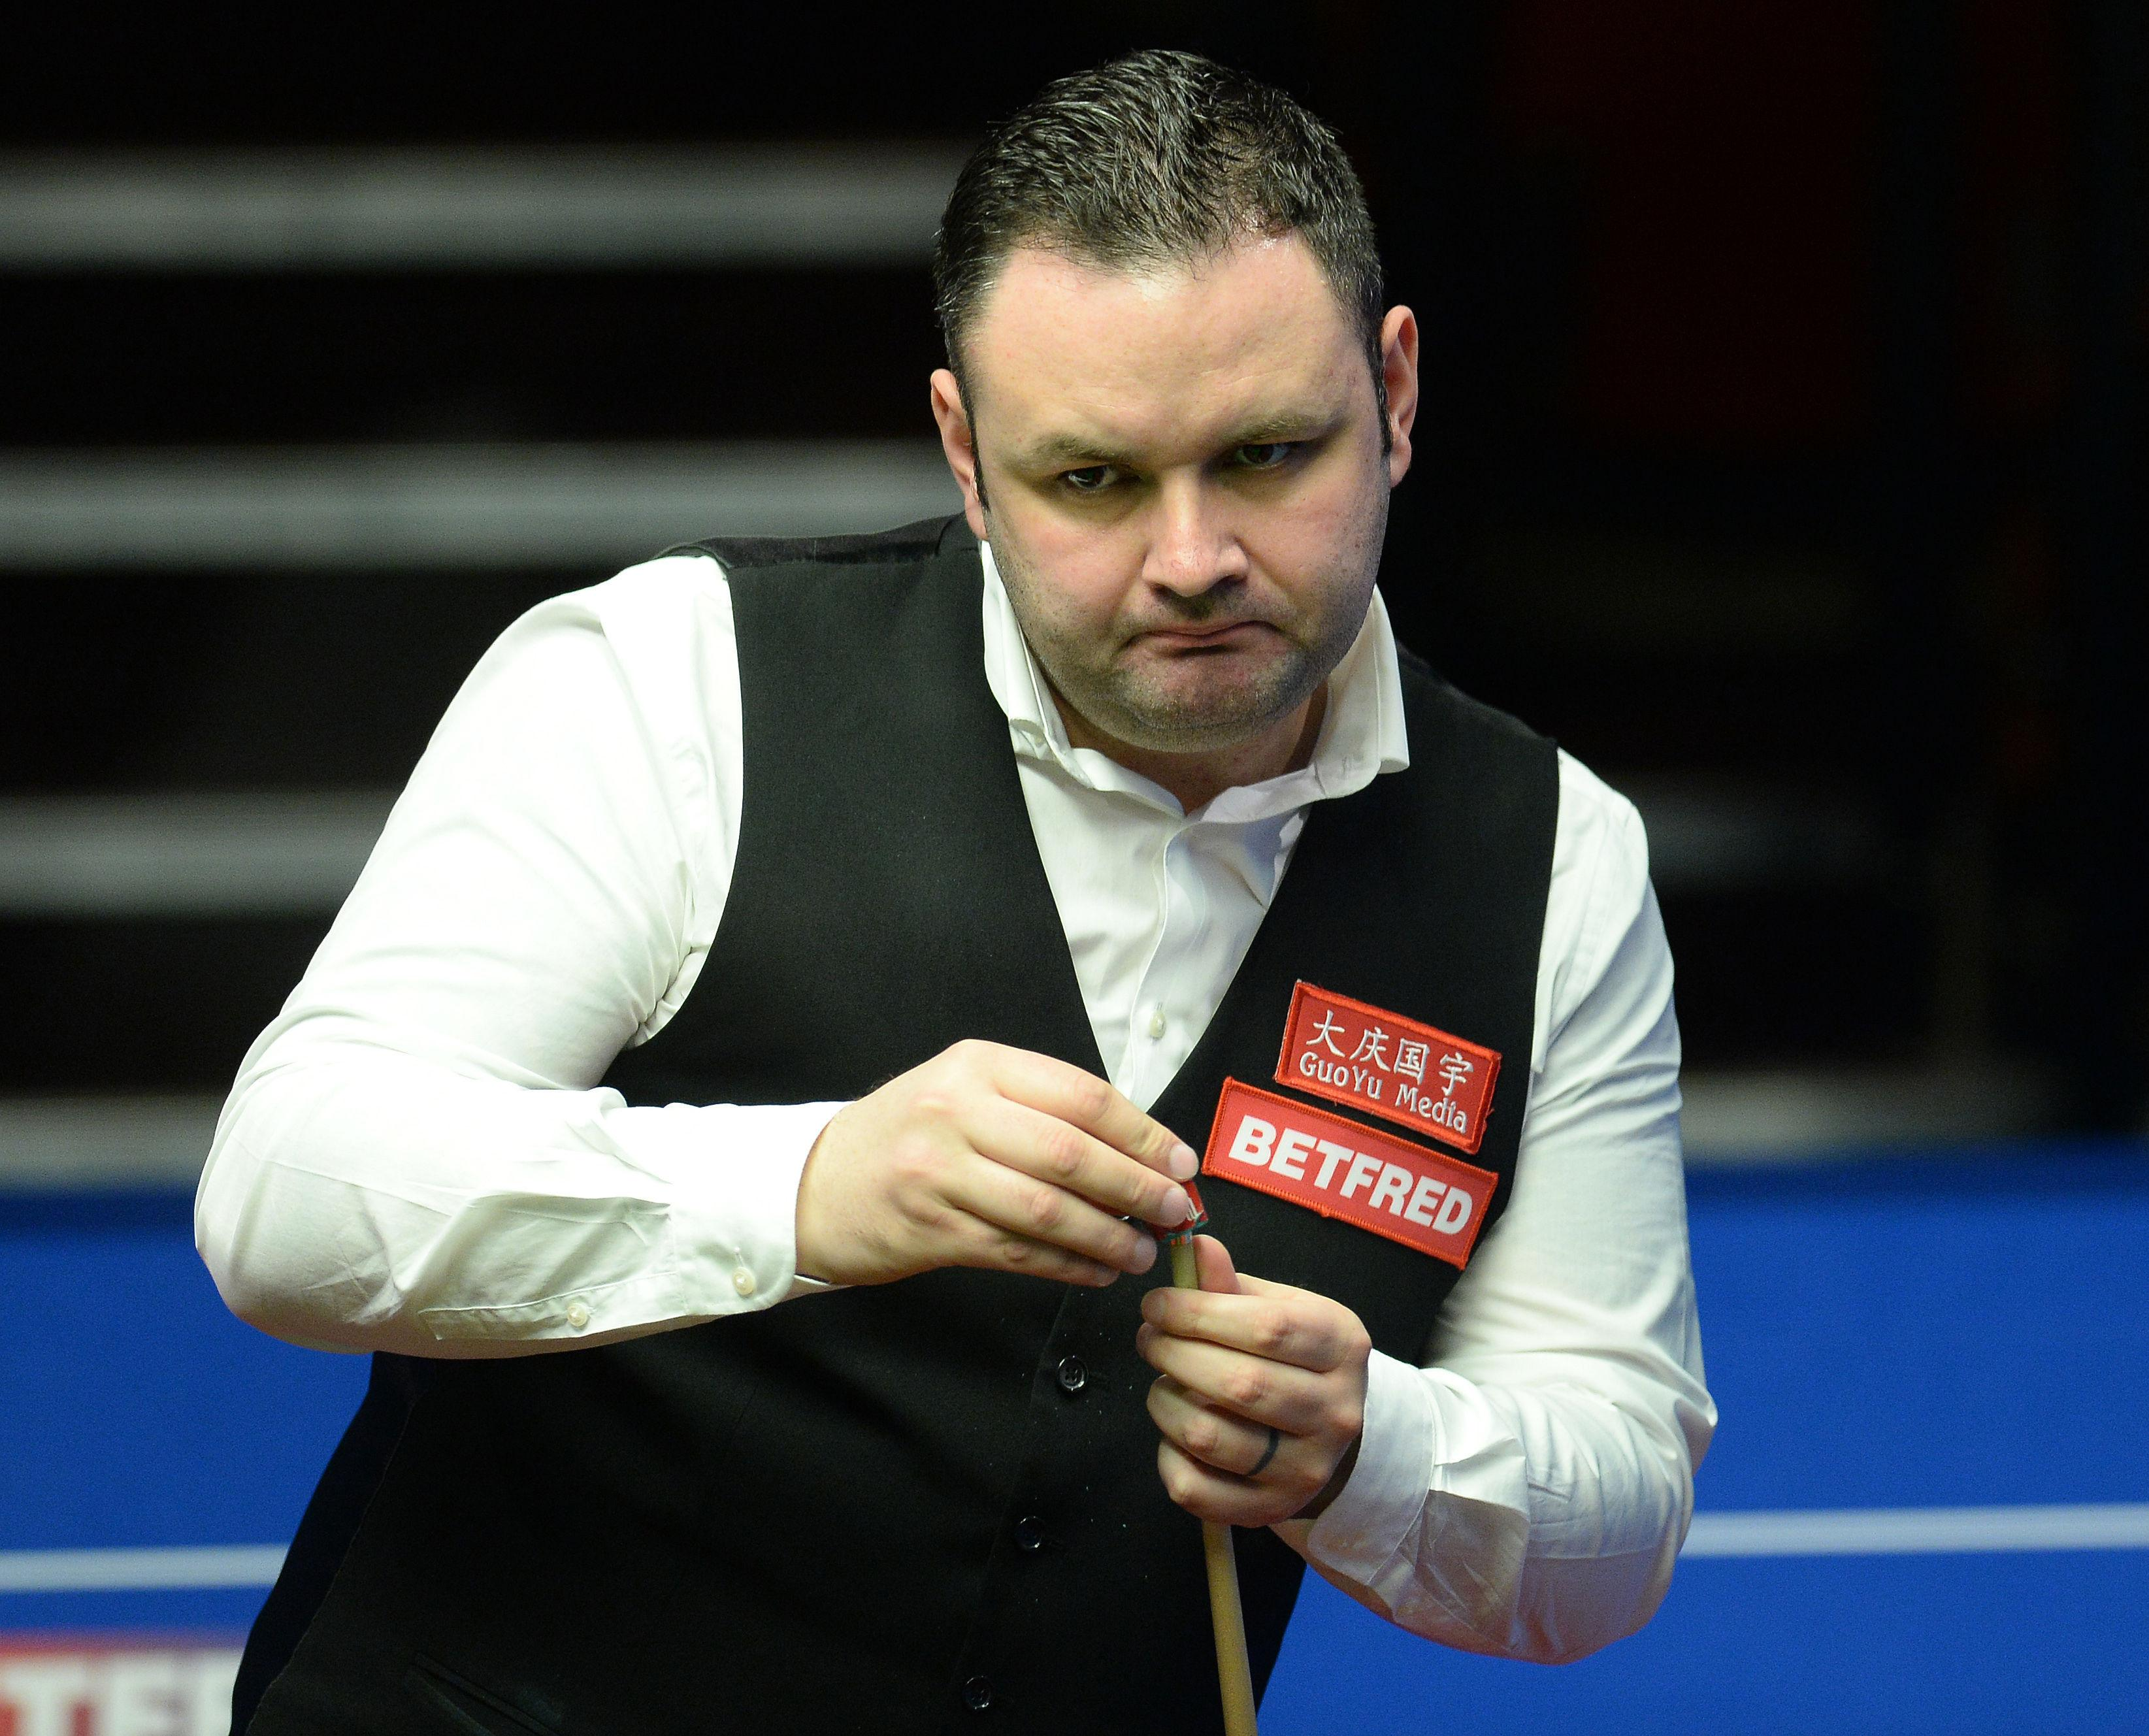 Scotsman Stephen Maguire came through with a win over Thepchaiya Un-Nooh